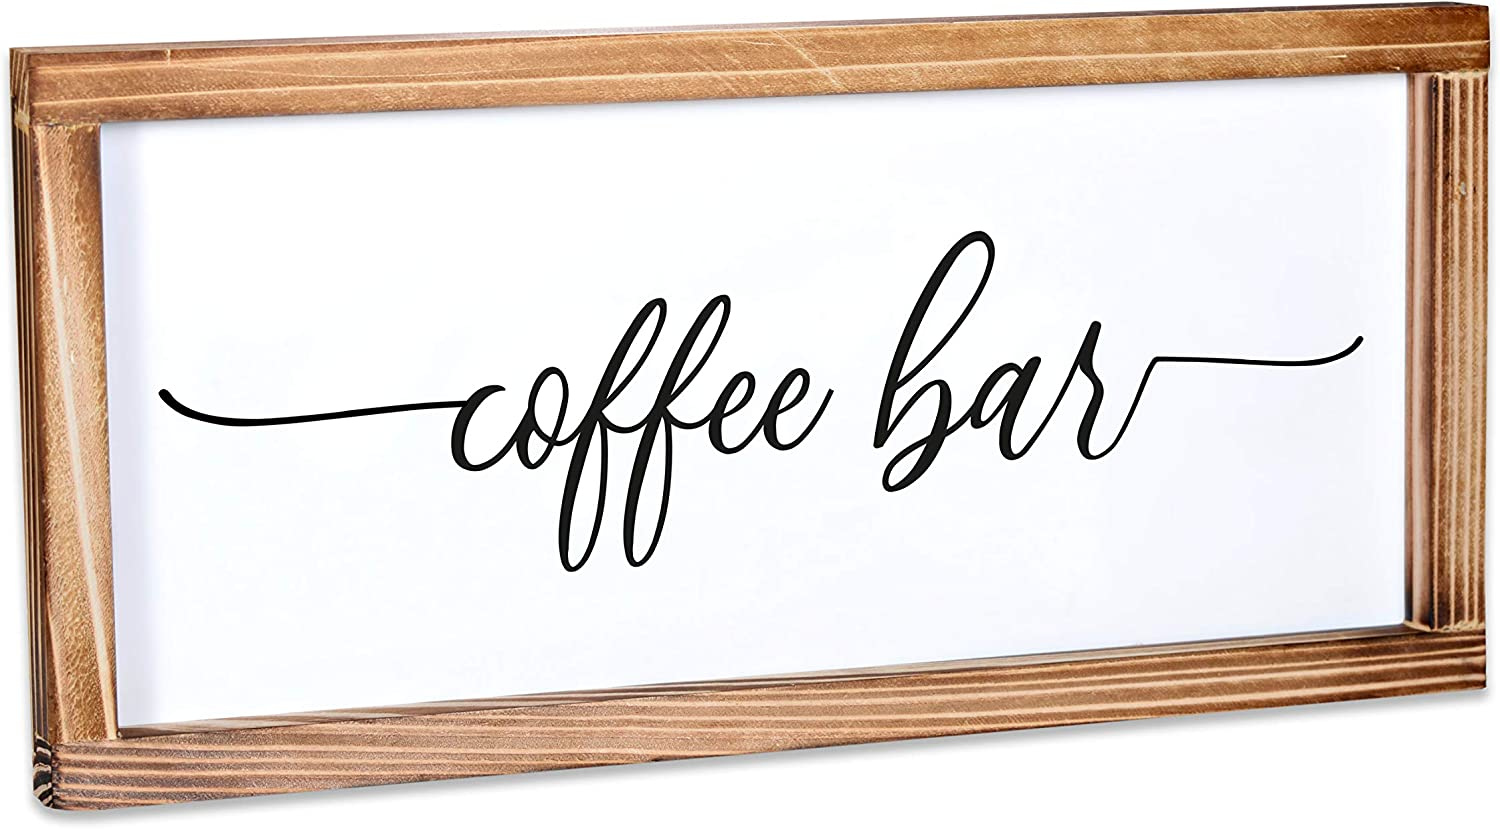 MAINEVENT Coffee Bar Sign - Rustic Kitchen Sign - Modern Farmhouse Kitchen Decor, Kitchen Wall Decor, Rustic Home Decor, Coffee Bar Decor with Solid Wood Frame 8x17 Inch